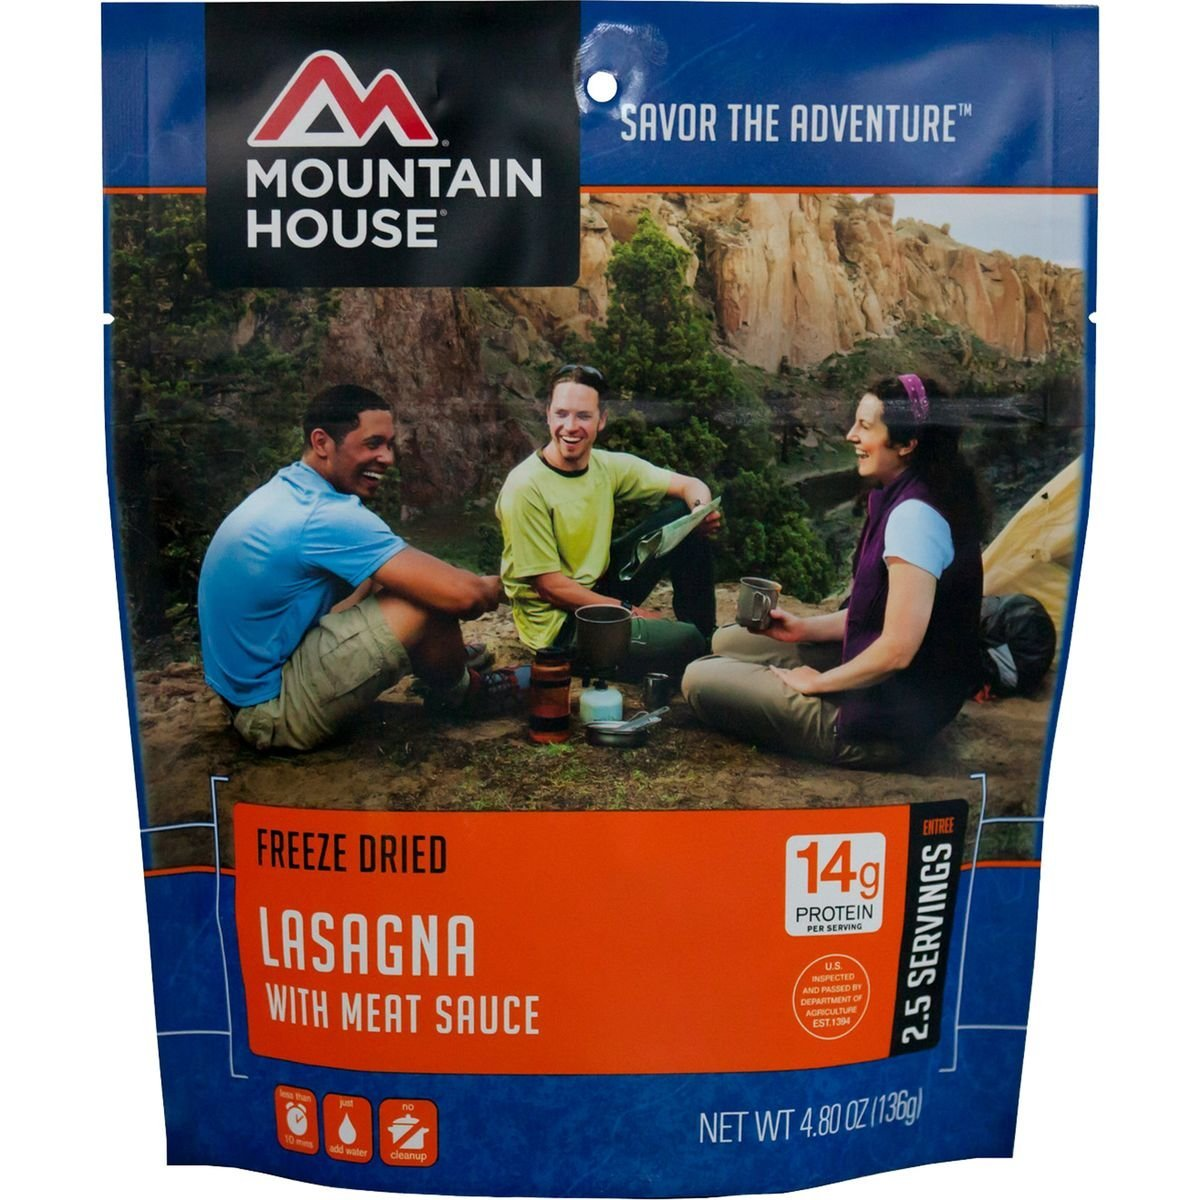 Lasagna with Meat Sauce 2.5 Serving Entree, Protein: 14g By Mountain House by